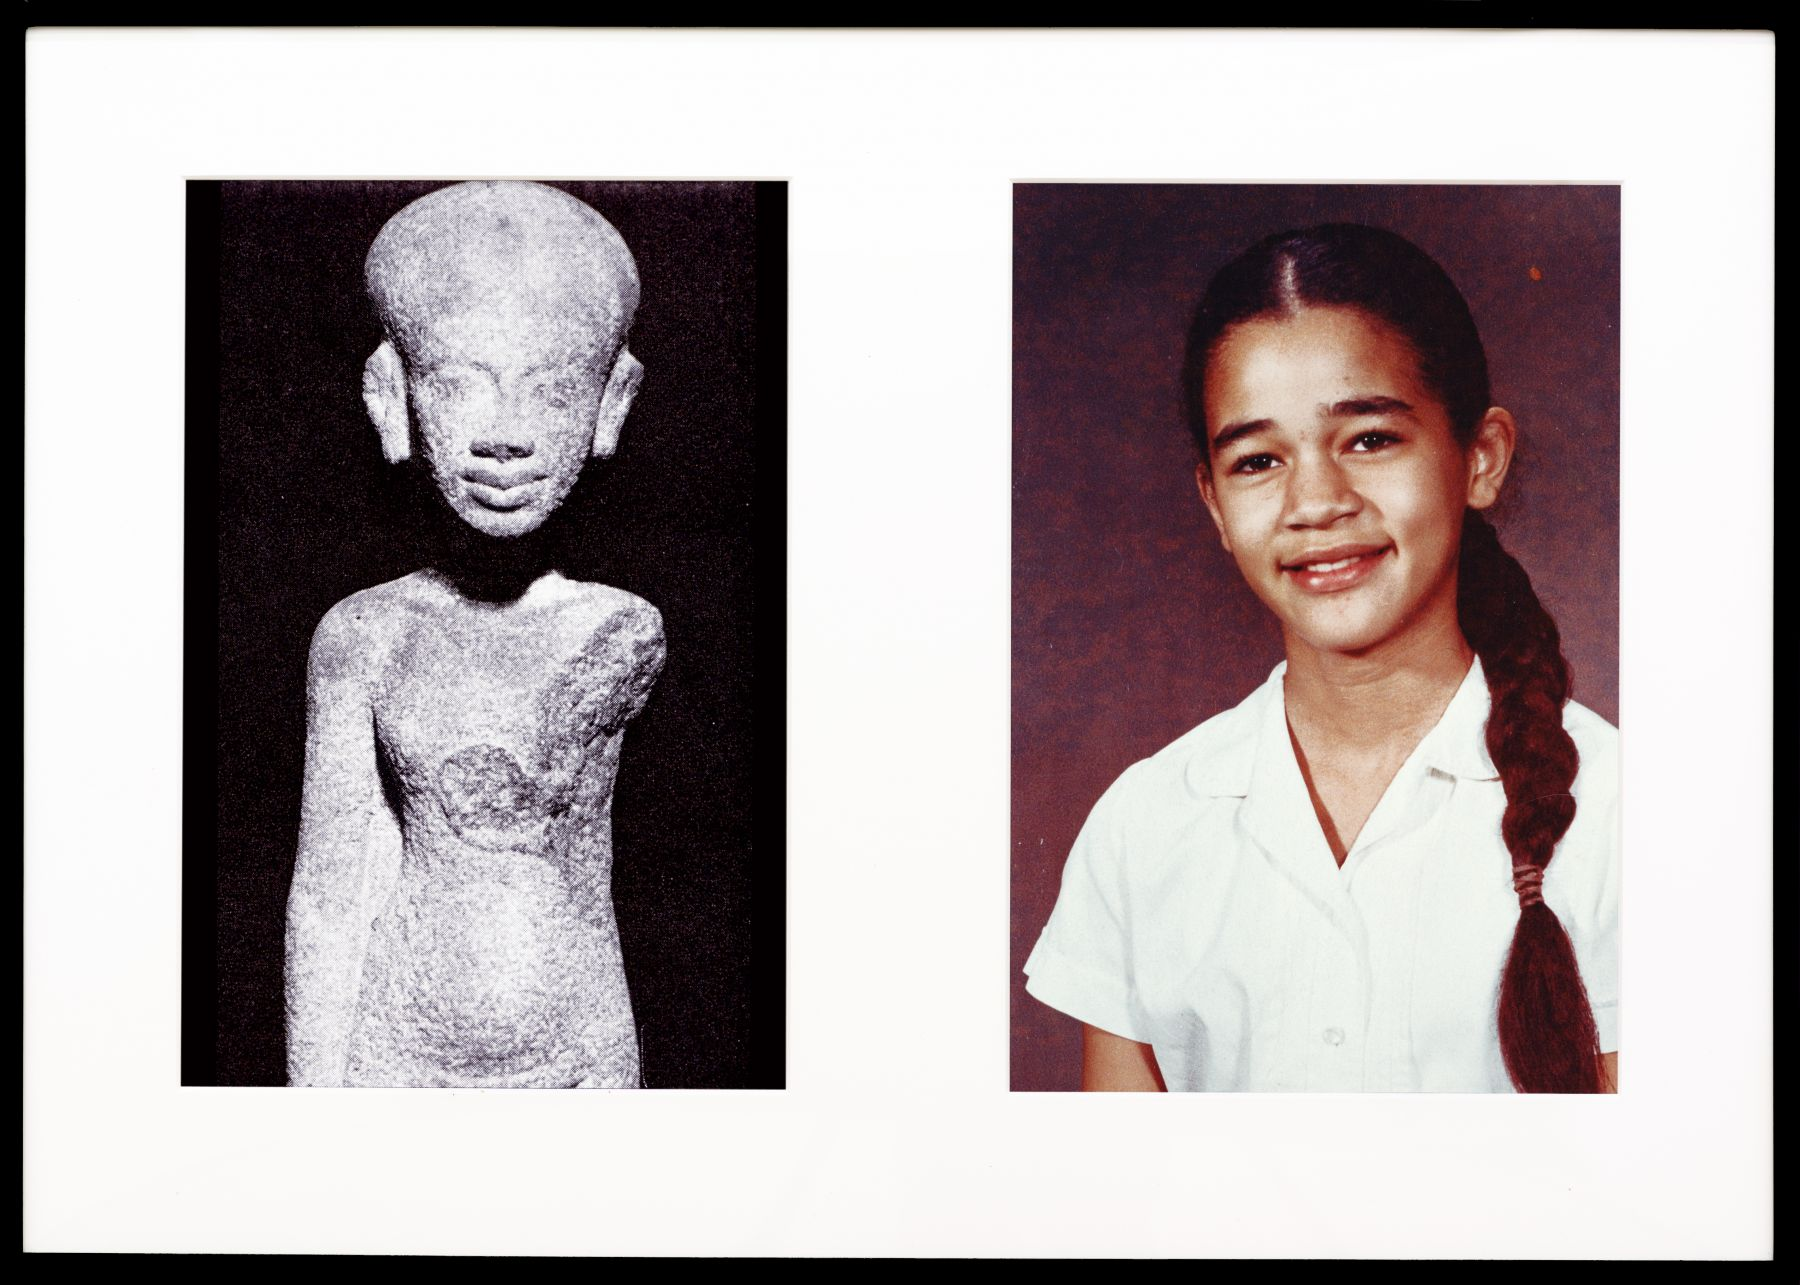 Miscegenated Family Album (Young Princesses), L: Nefertiti's daughter, Ankhesenpaaten; R: Devonia's daughter, Candace, 1980/1994, Cibachrome prints, 26h x 37w in (66.04h x 93.98w cm)